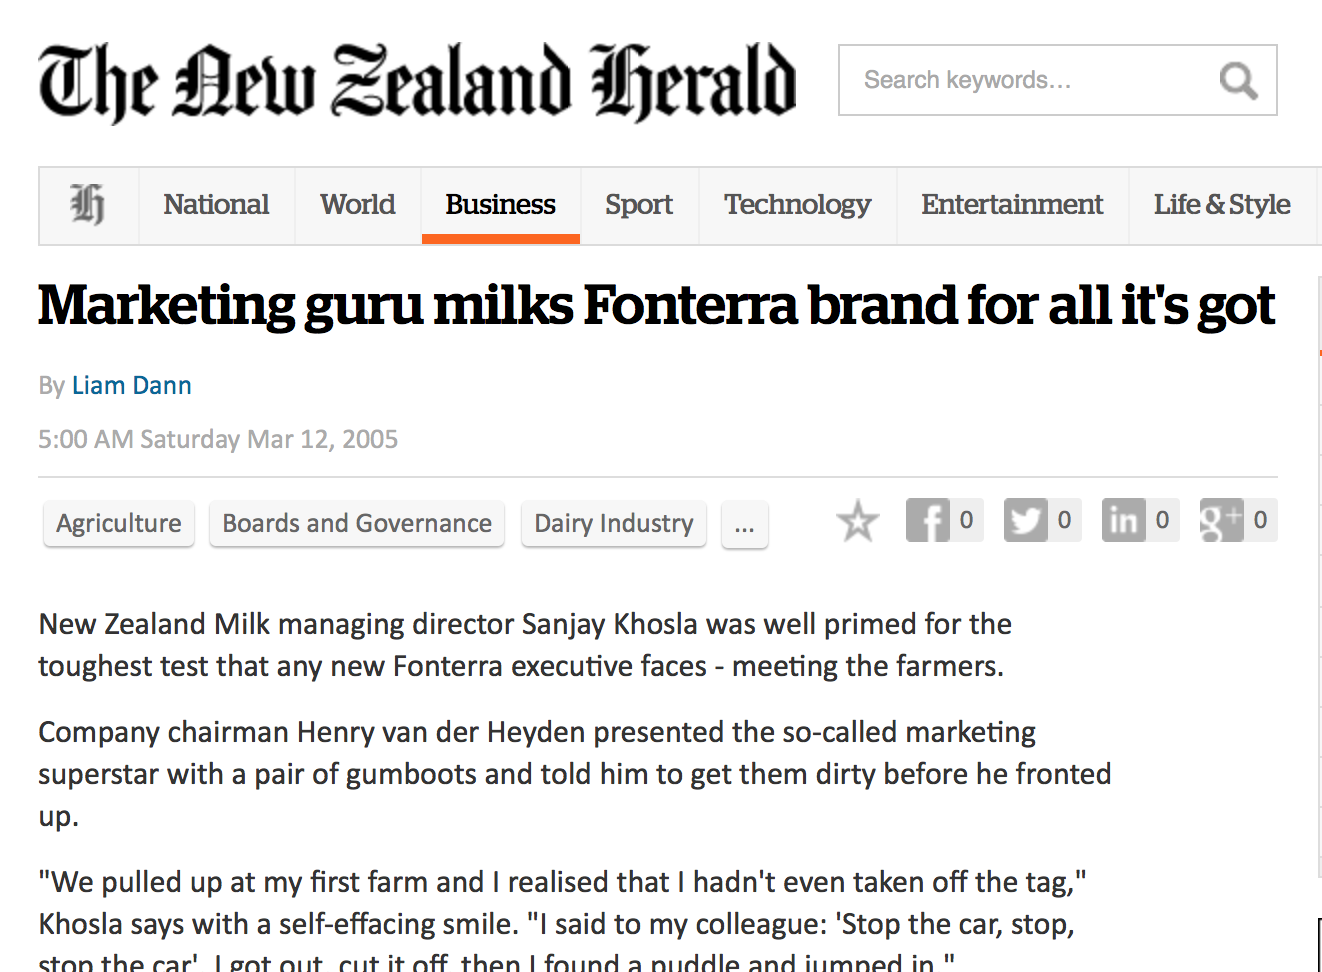 Marketing guru milks Fonterra brand